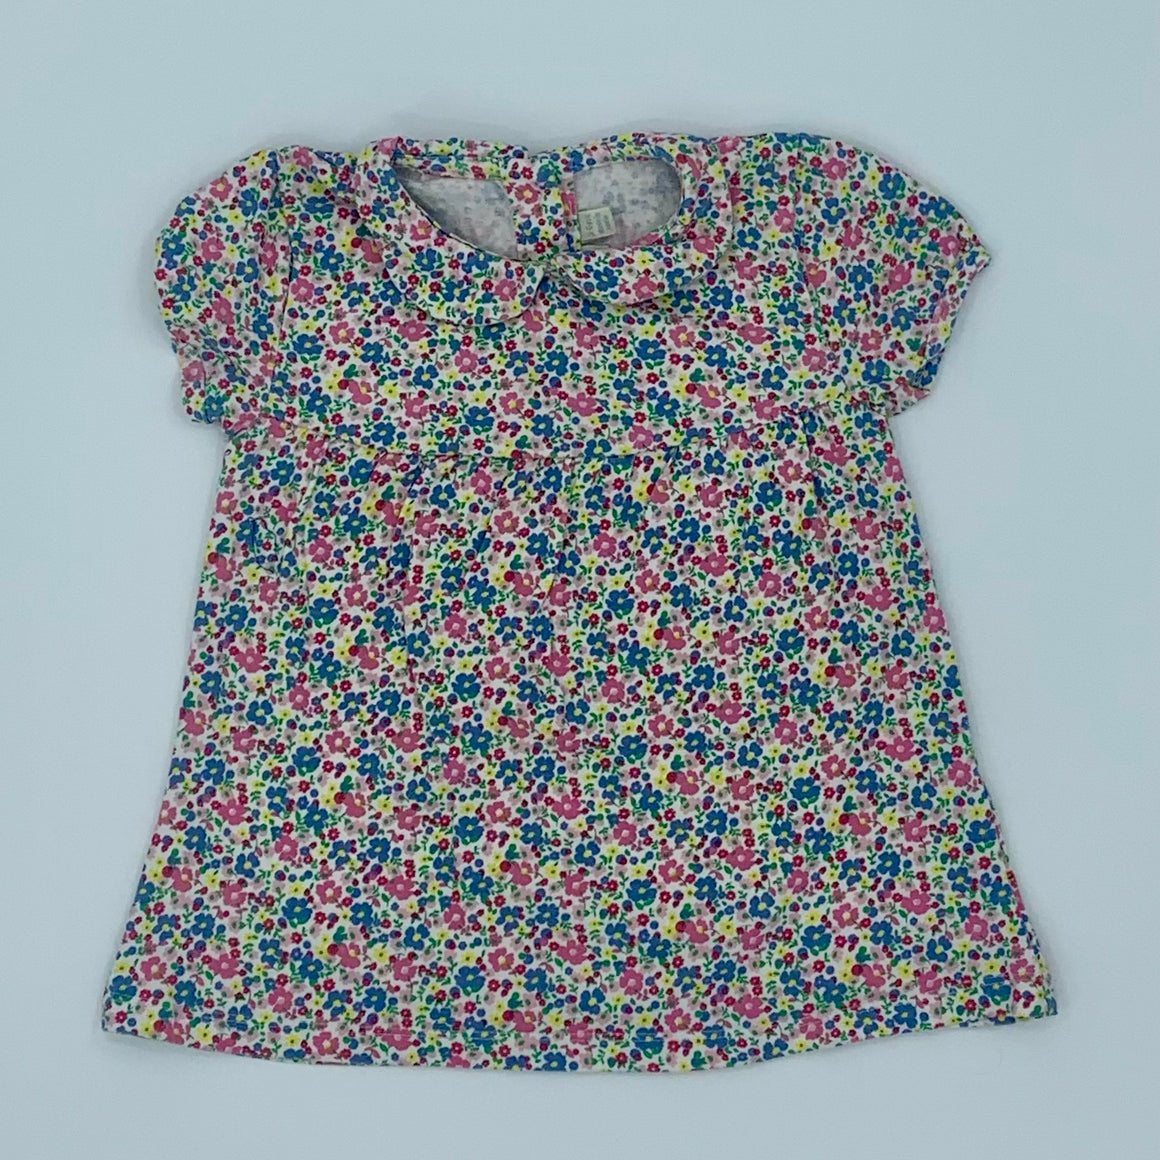 Gently Worn Jojo Maman Bebe flower polo top size 5-6 years